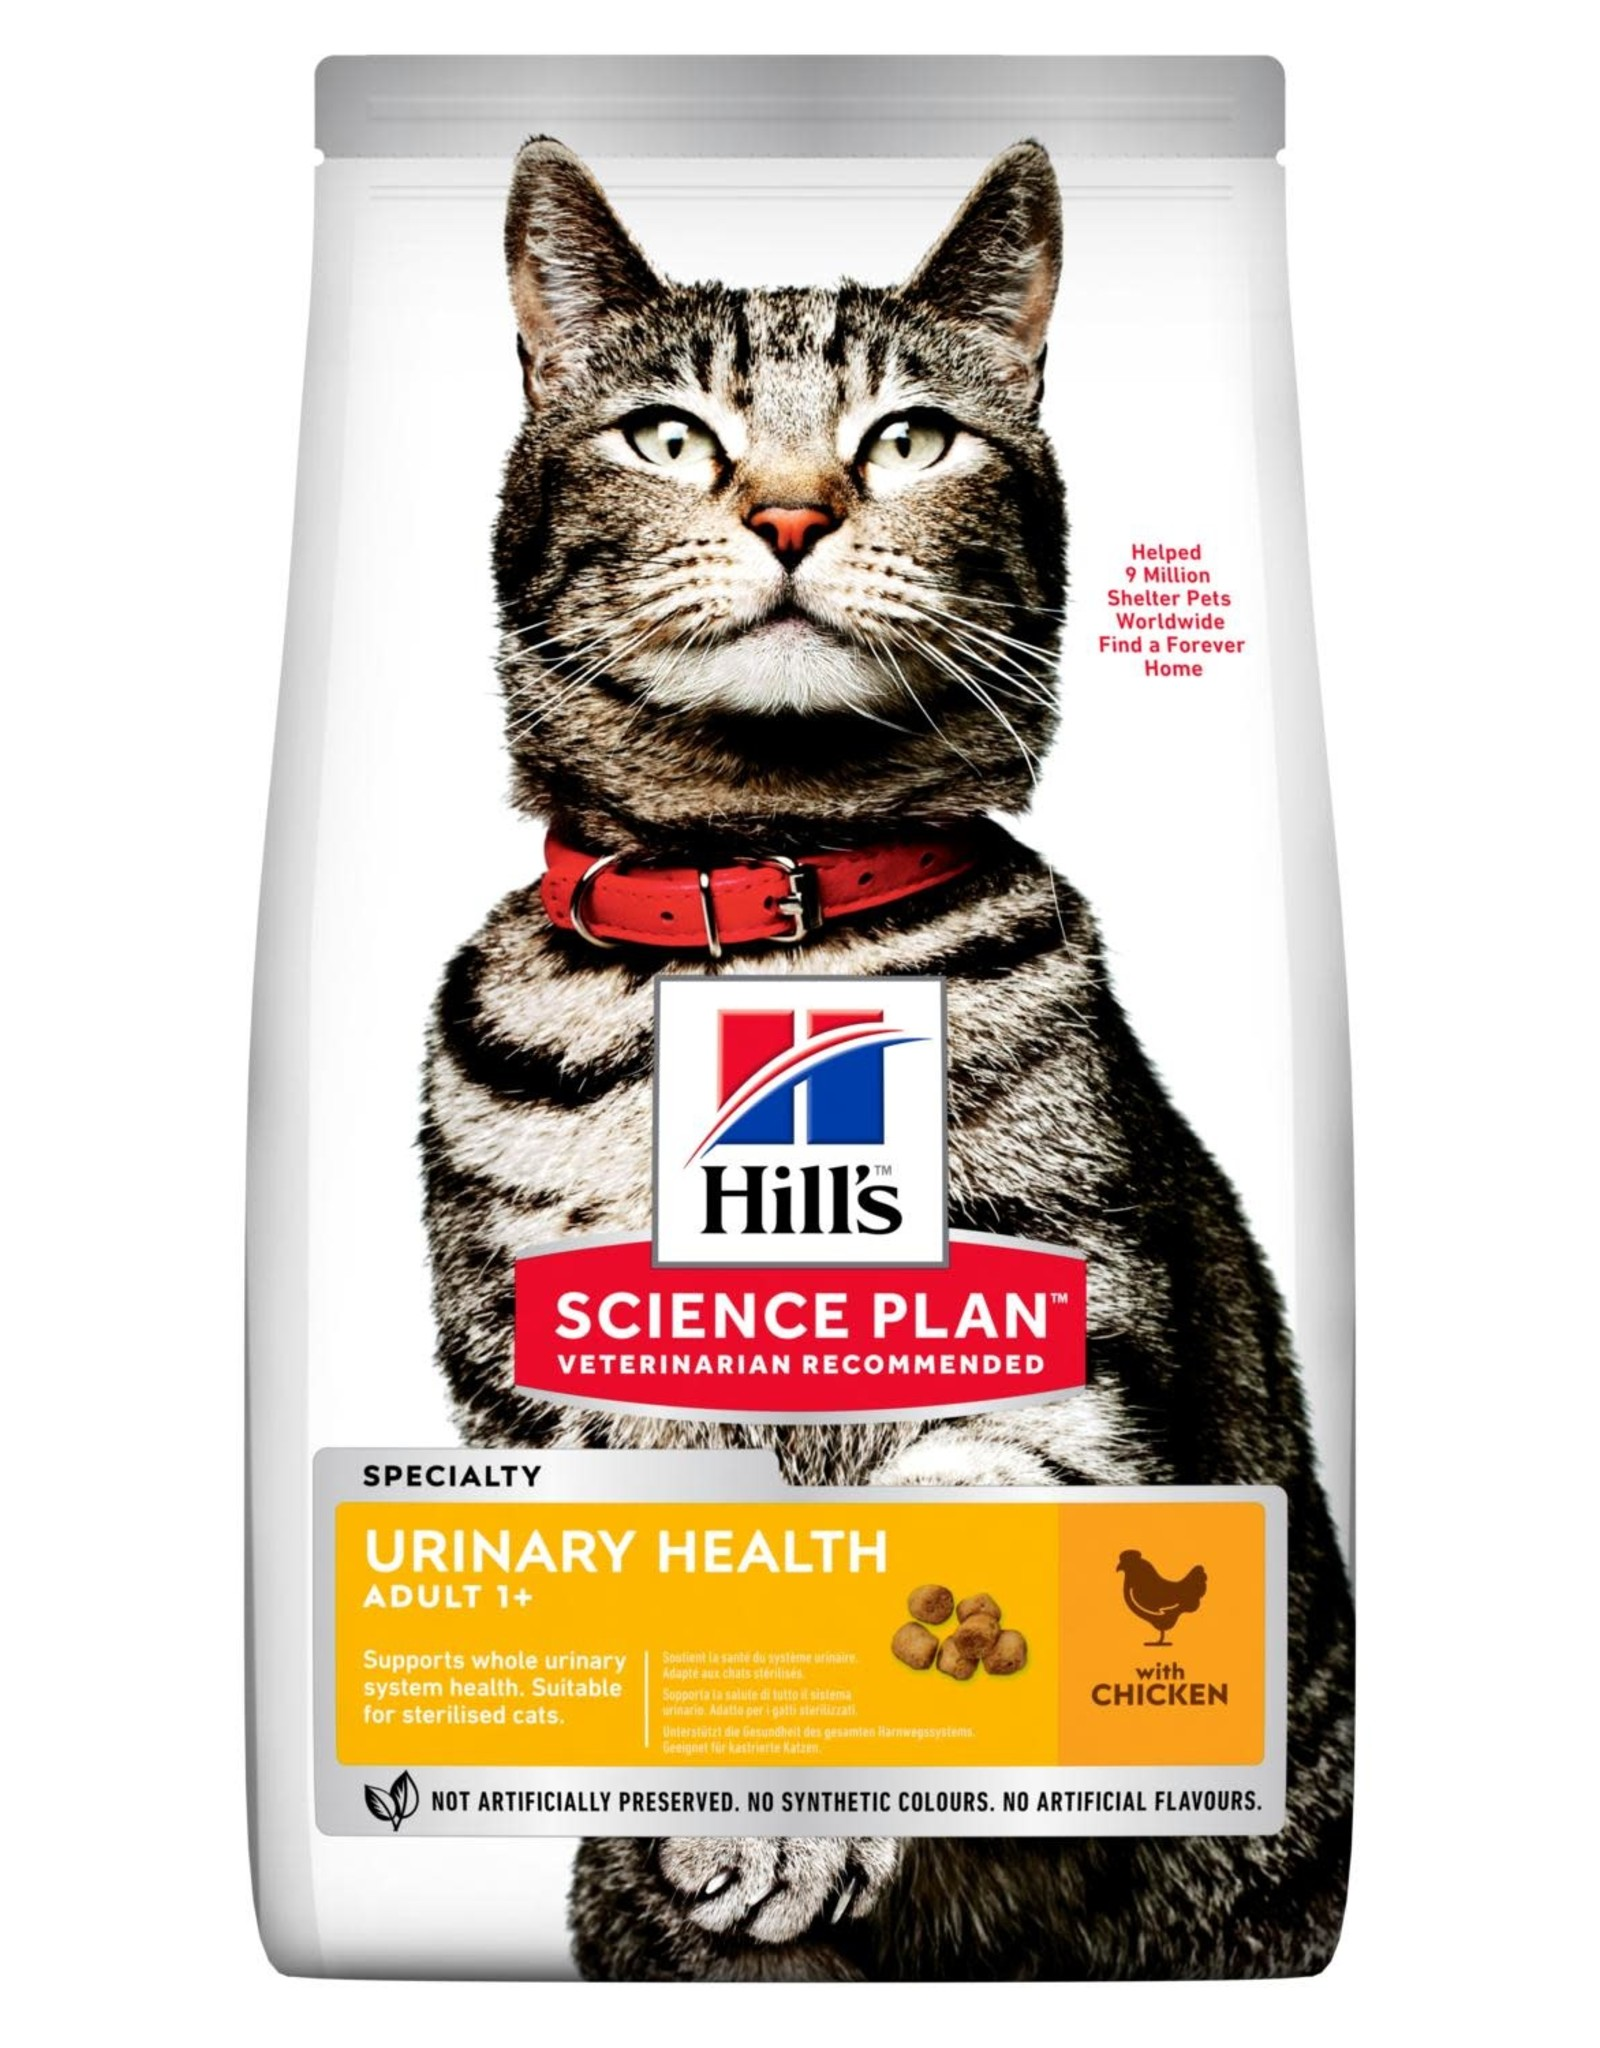 Hill's Science Plan Adult 1+ Urinary Health Cat Dry Food Chicken, 1.5kg